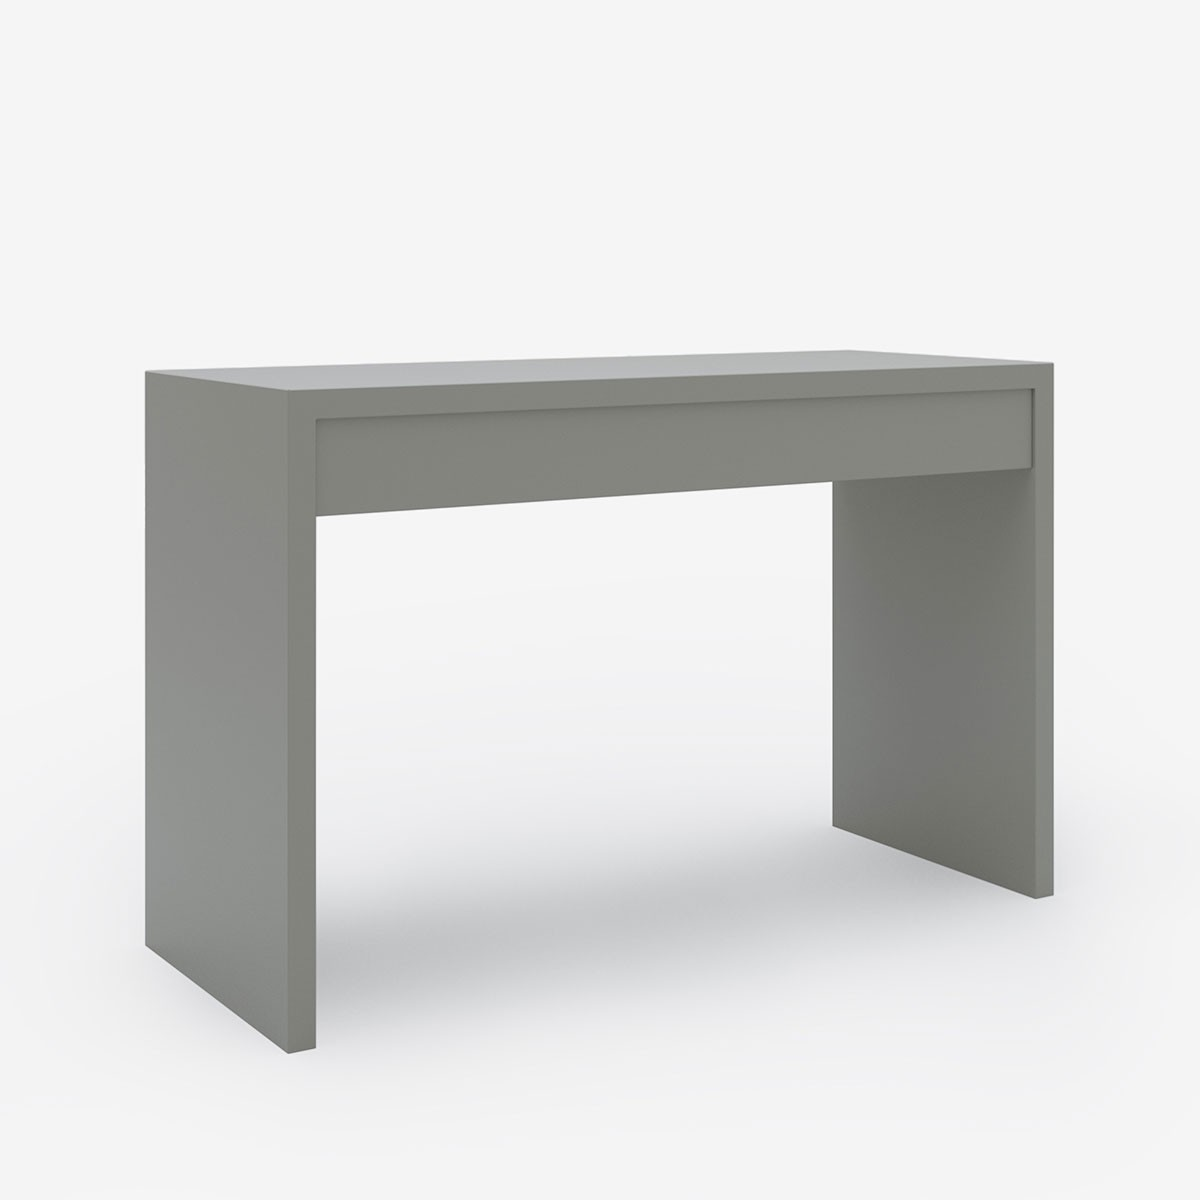 Image shows Dressed To Impress Table in Soft Taupe Lacquer